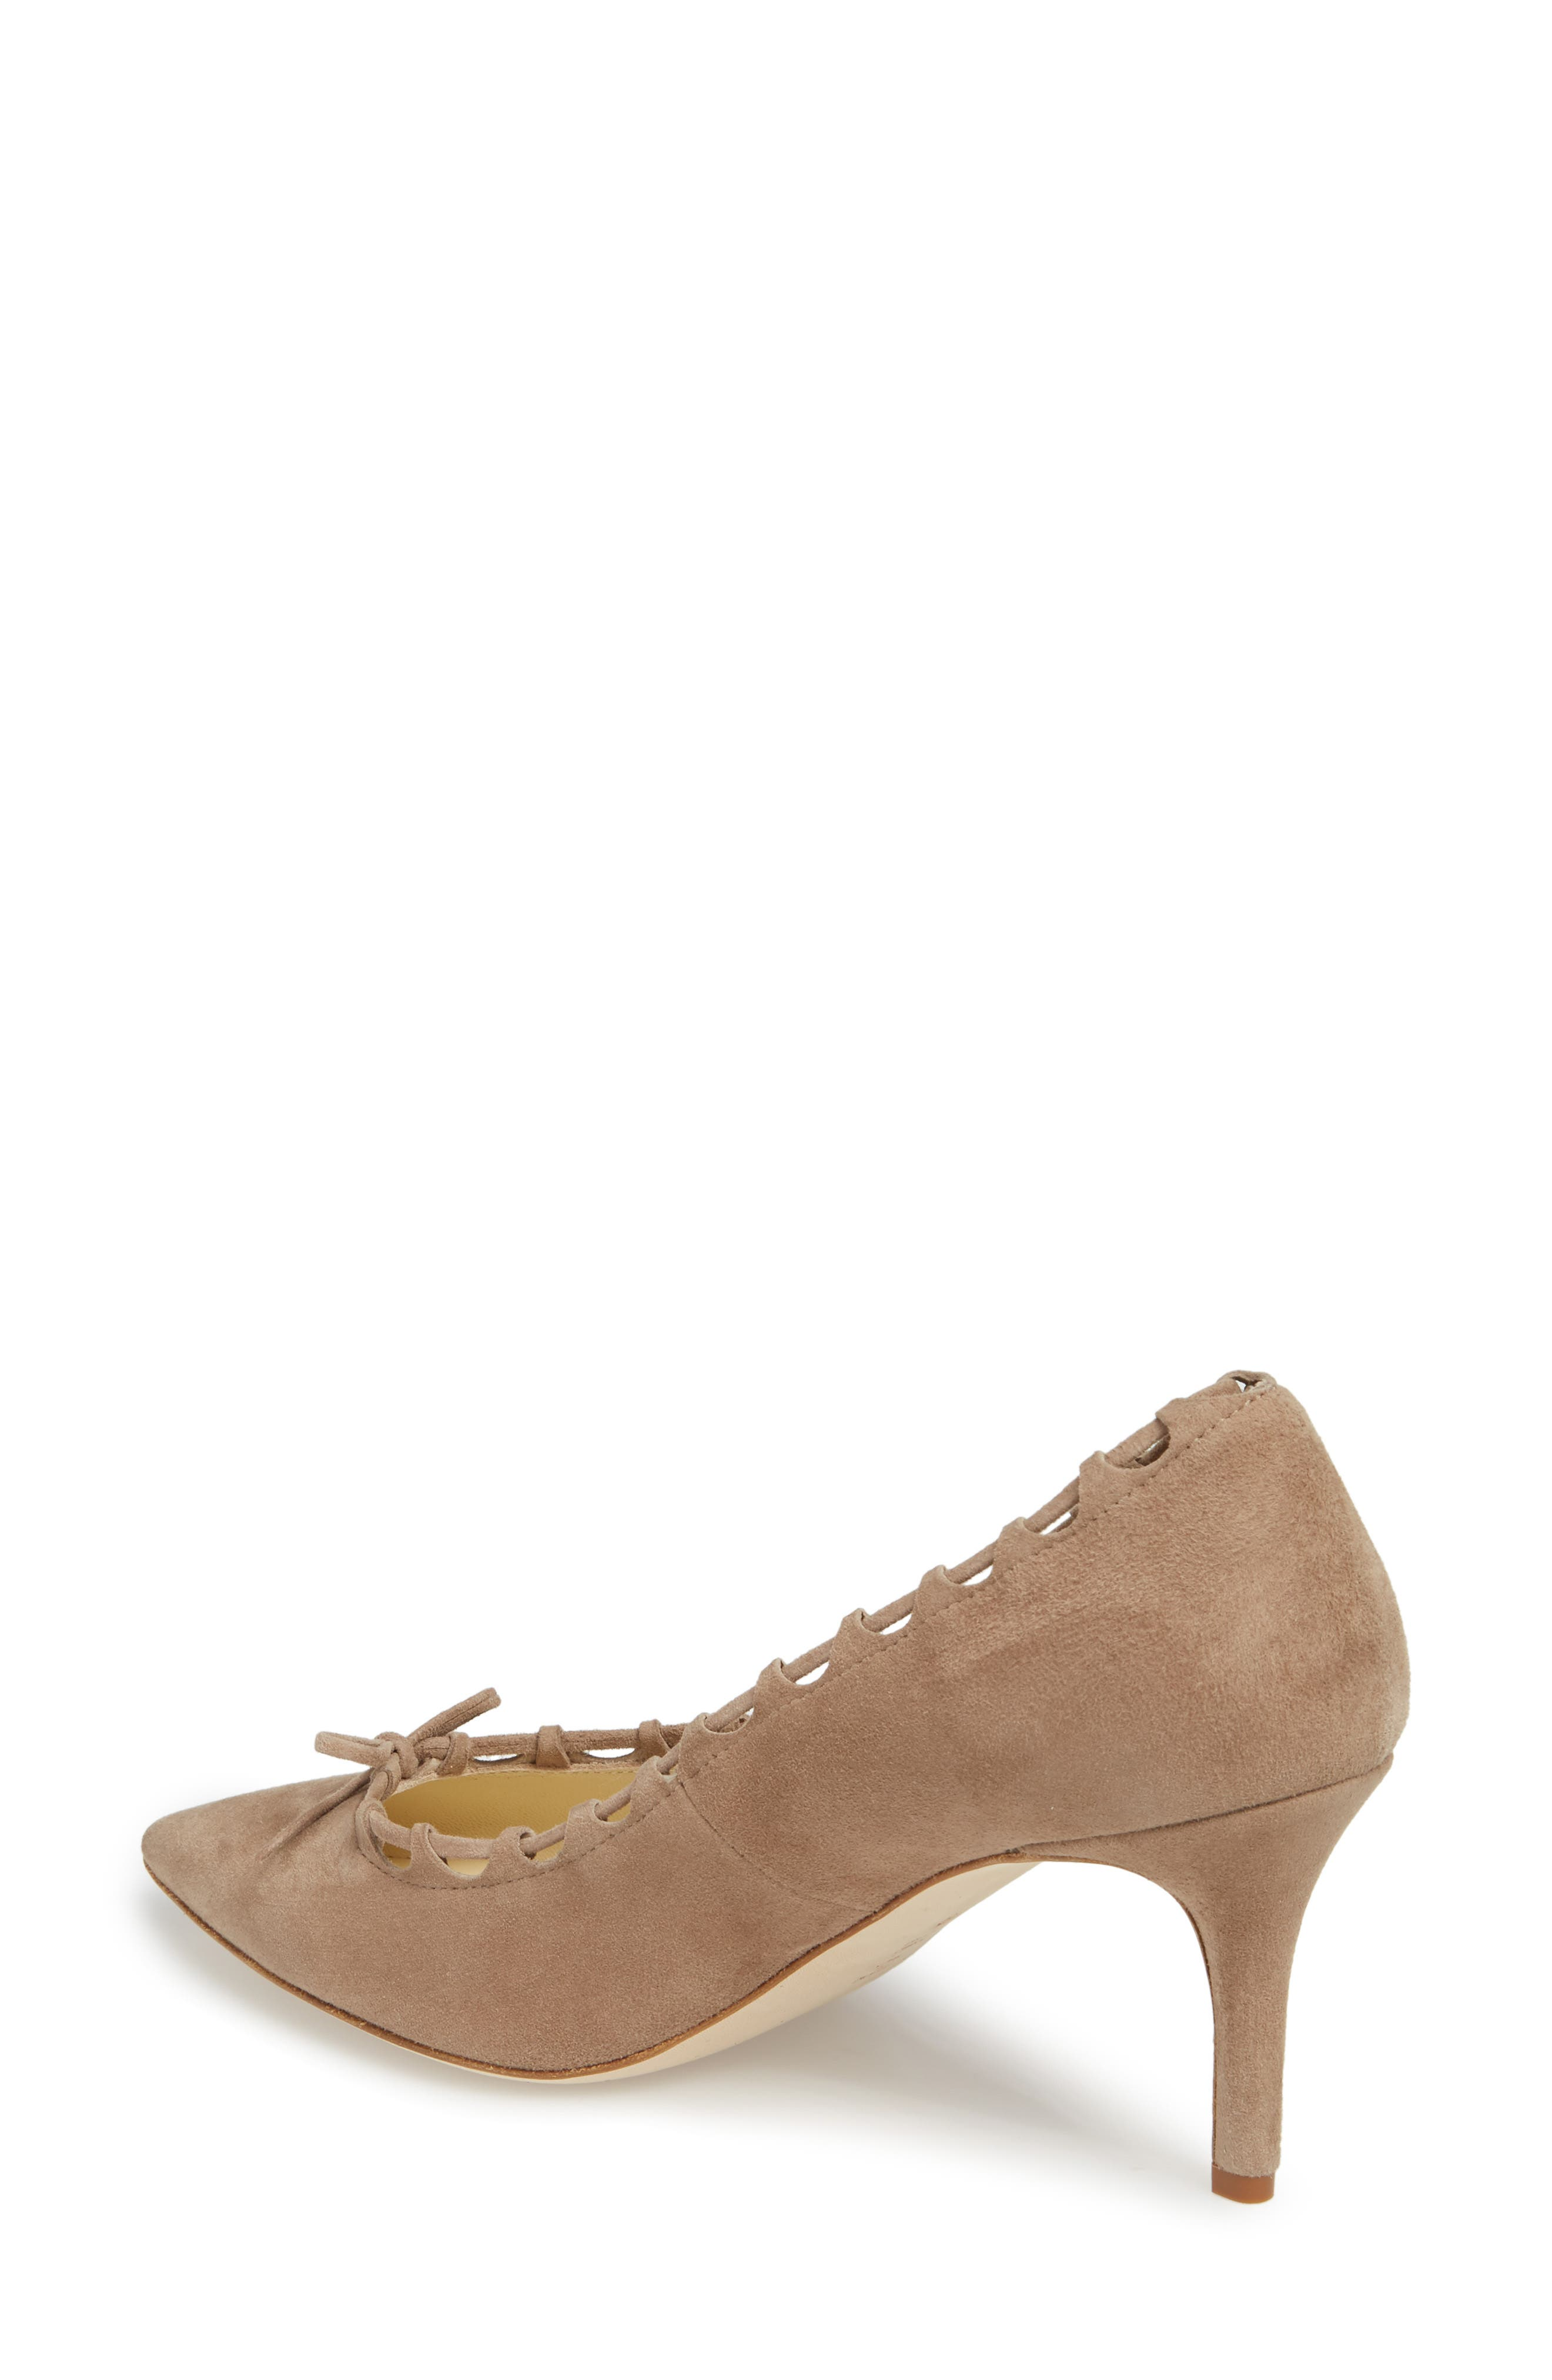 Butter Eris Pointy Toe Pump,                             Alternate thumbnail 2, color,                             Taupe Suede